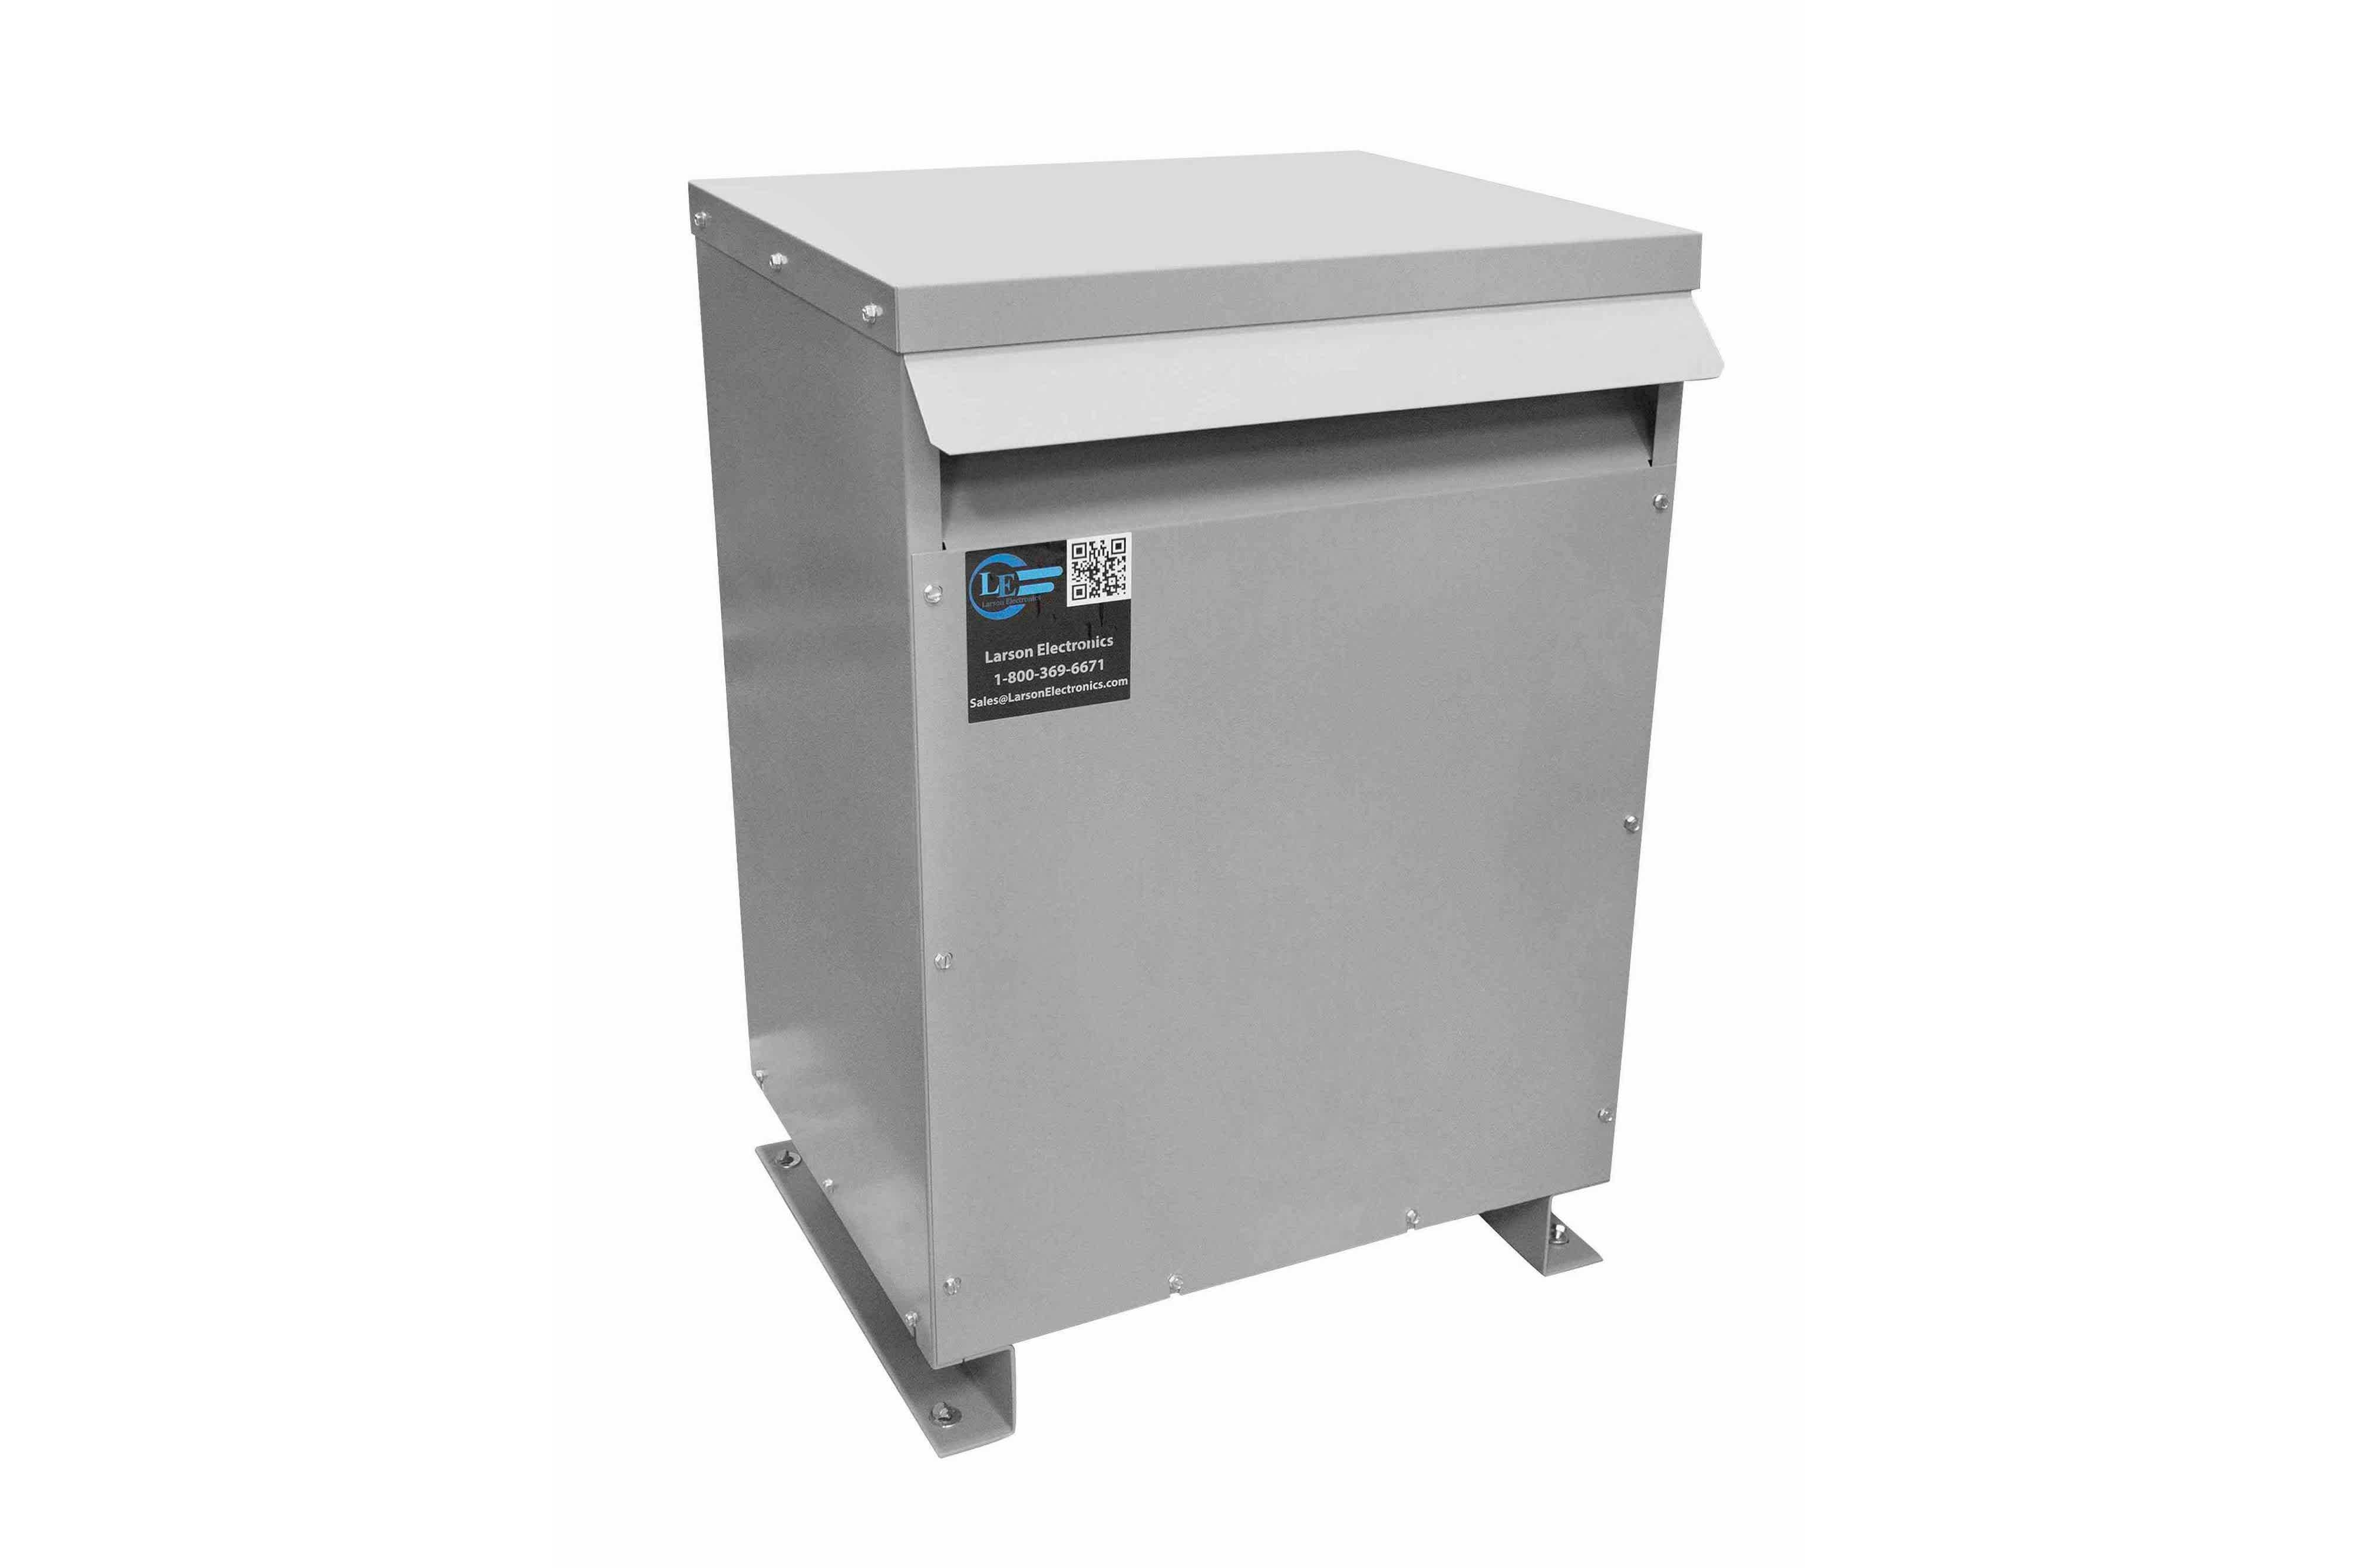 15 kVA 3PH Isolation Transformer, 415V Delta Primary, 480V Delta Secondary, N3R, Ventilated, 60 Hz